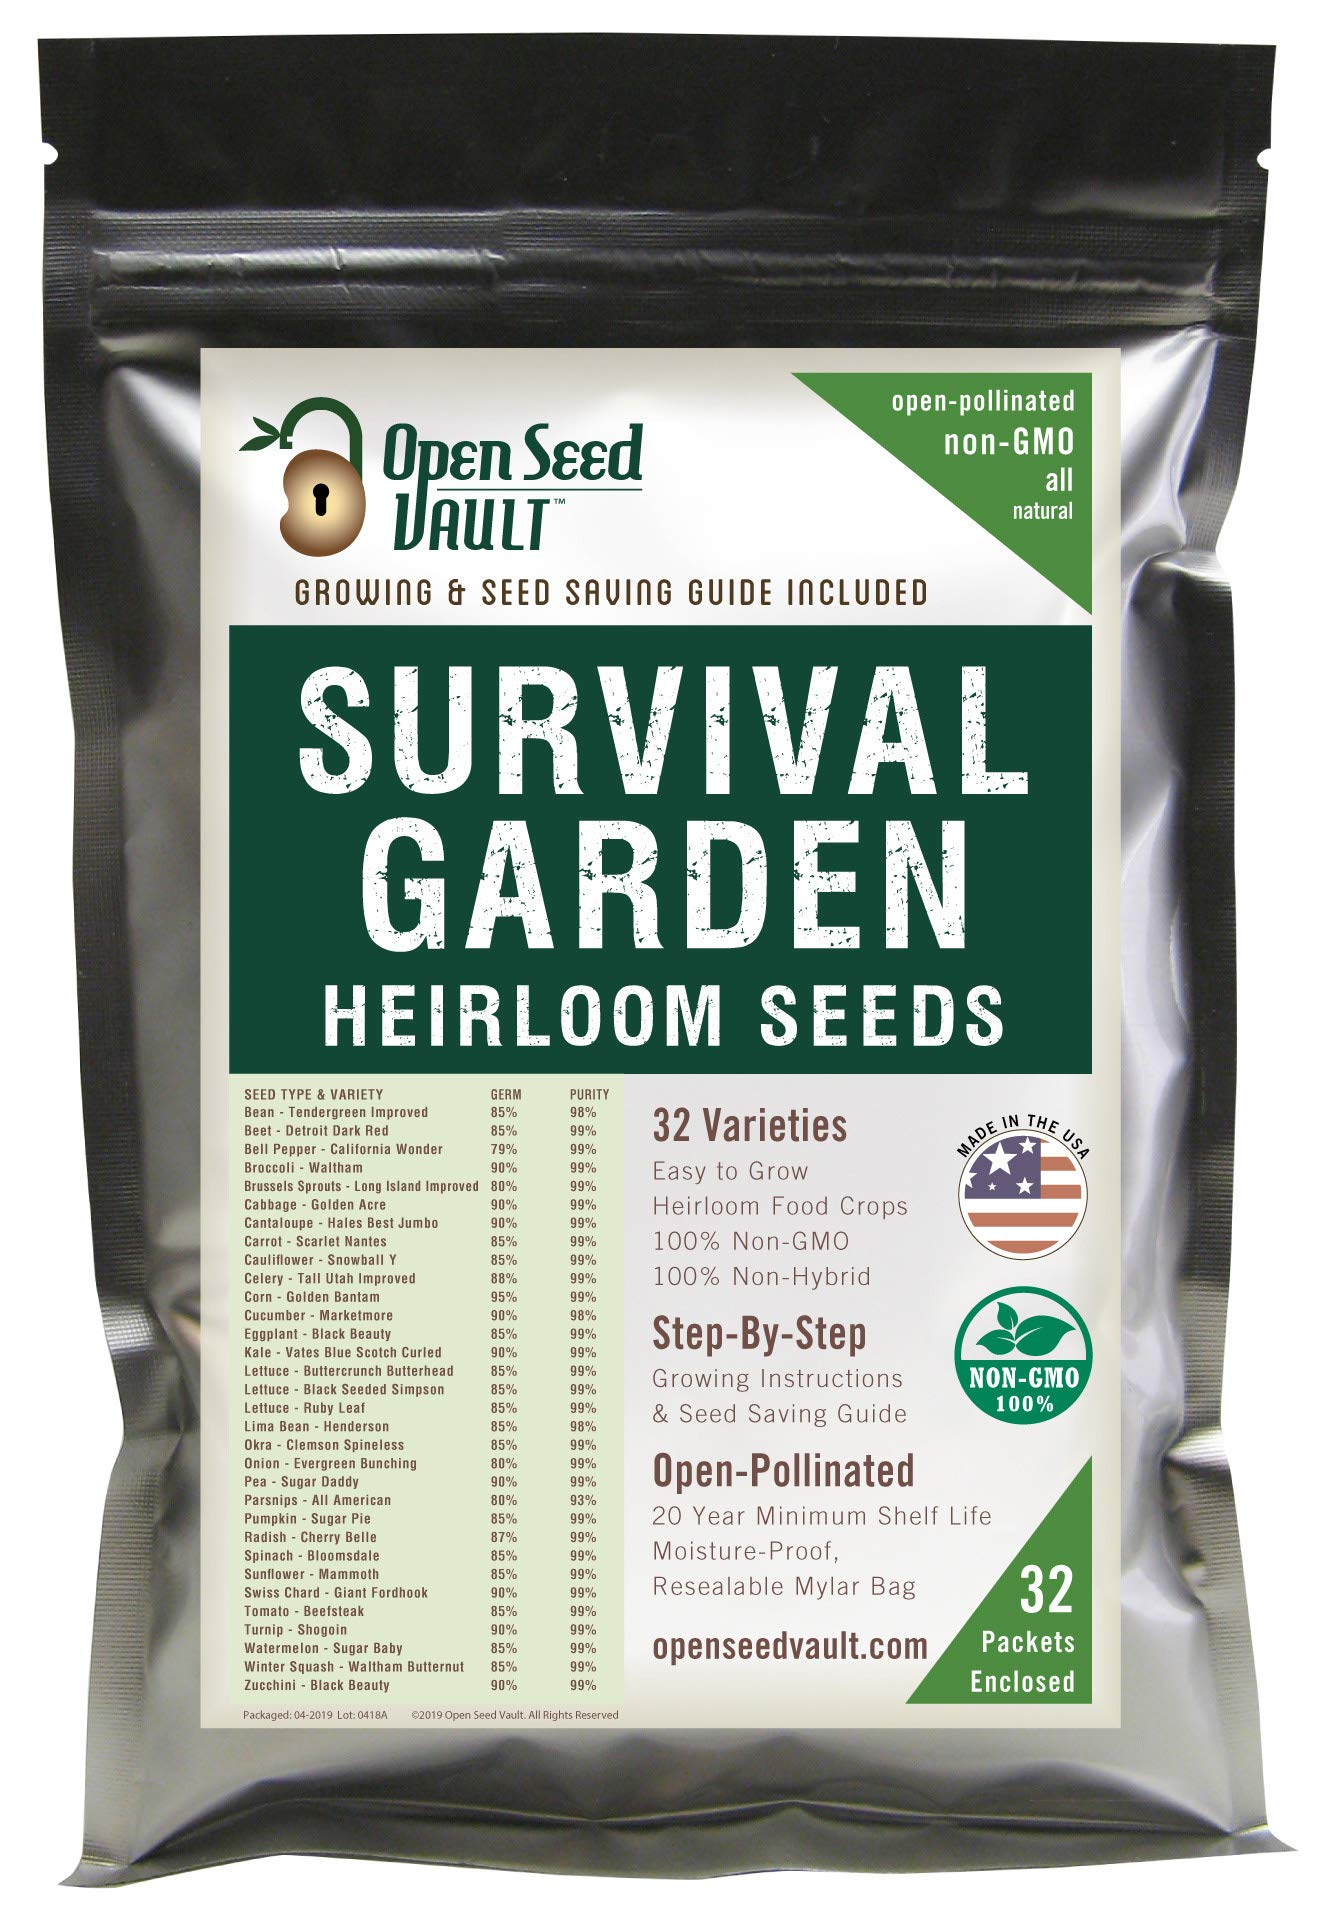 Survival Garden 15,000 Non GMO Heirloom Vegetable Seeds Survival Garden 32 Variety Pack by Open Seed Vault 1 32 Varieties of All Natural Vegetable Seeds: Non hybrid, Non gmo, Heirloom 100% Naturally Grown and Open Pollinated seeds with high Germination Rate Vegetable Growing and Seed Harvesting Guide Included with Seeds Tested for Maximum Germination and Yield.